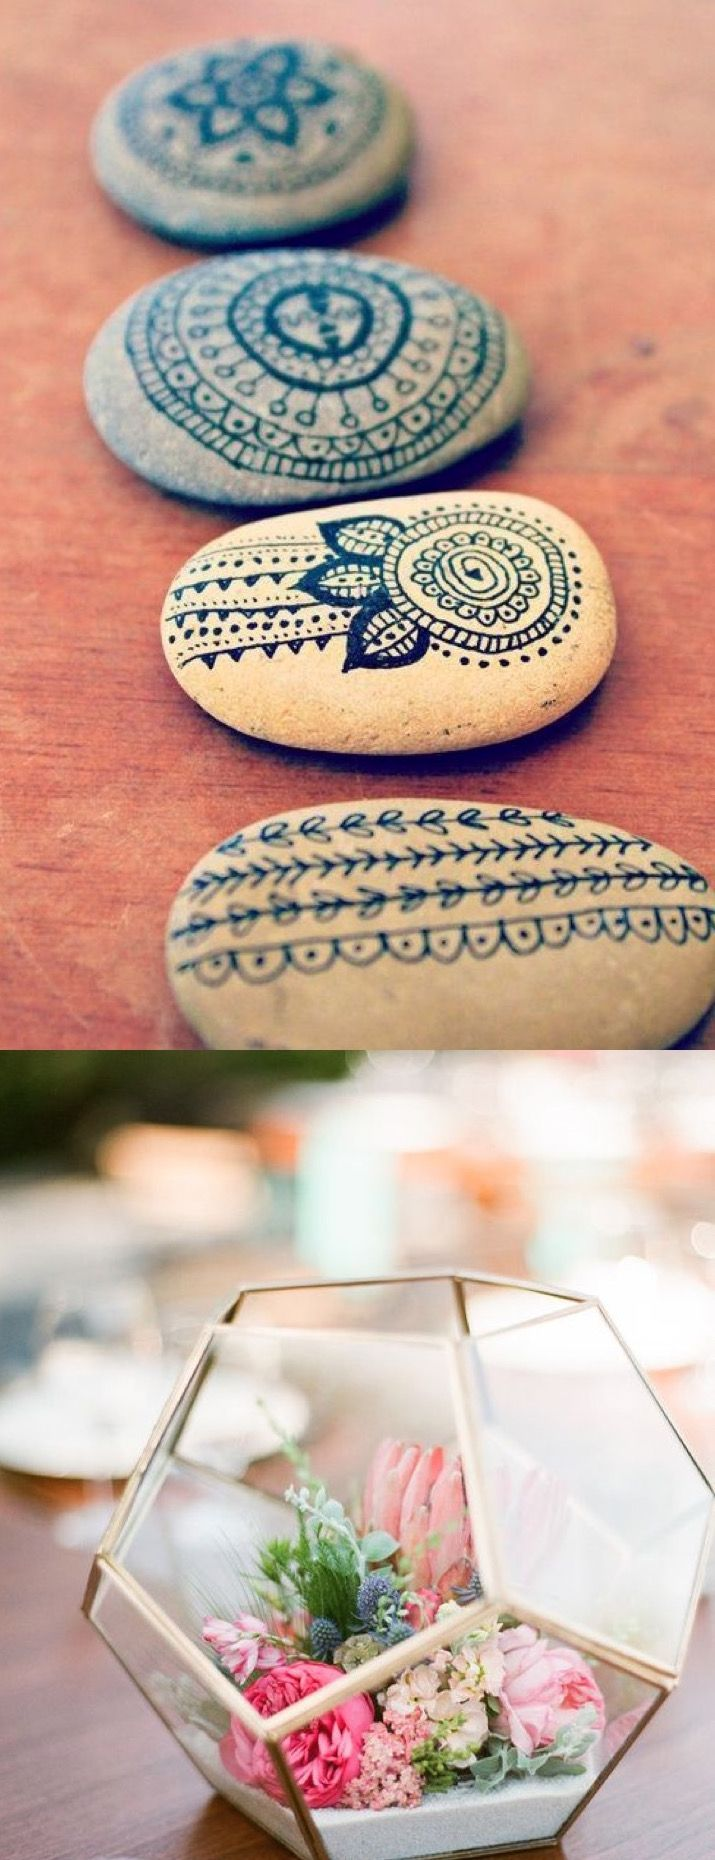 Things to Do When You Need to Relax | From zen stones, adult coloring books, succulent gardens, zen ideas to help you feel relaxed and calm